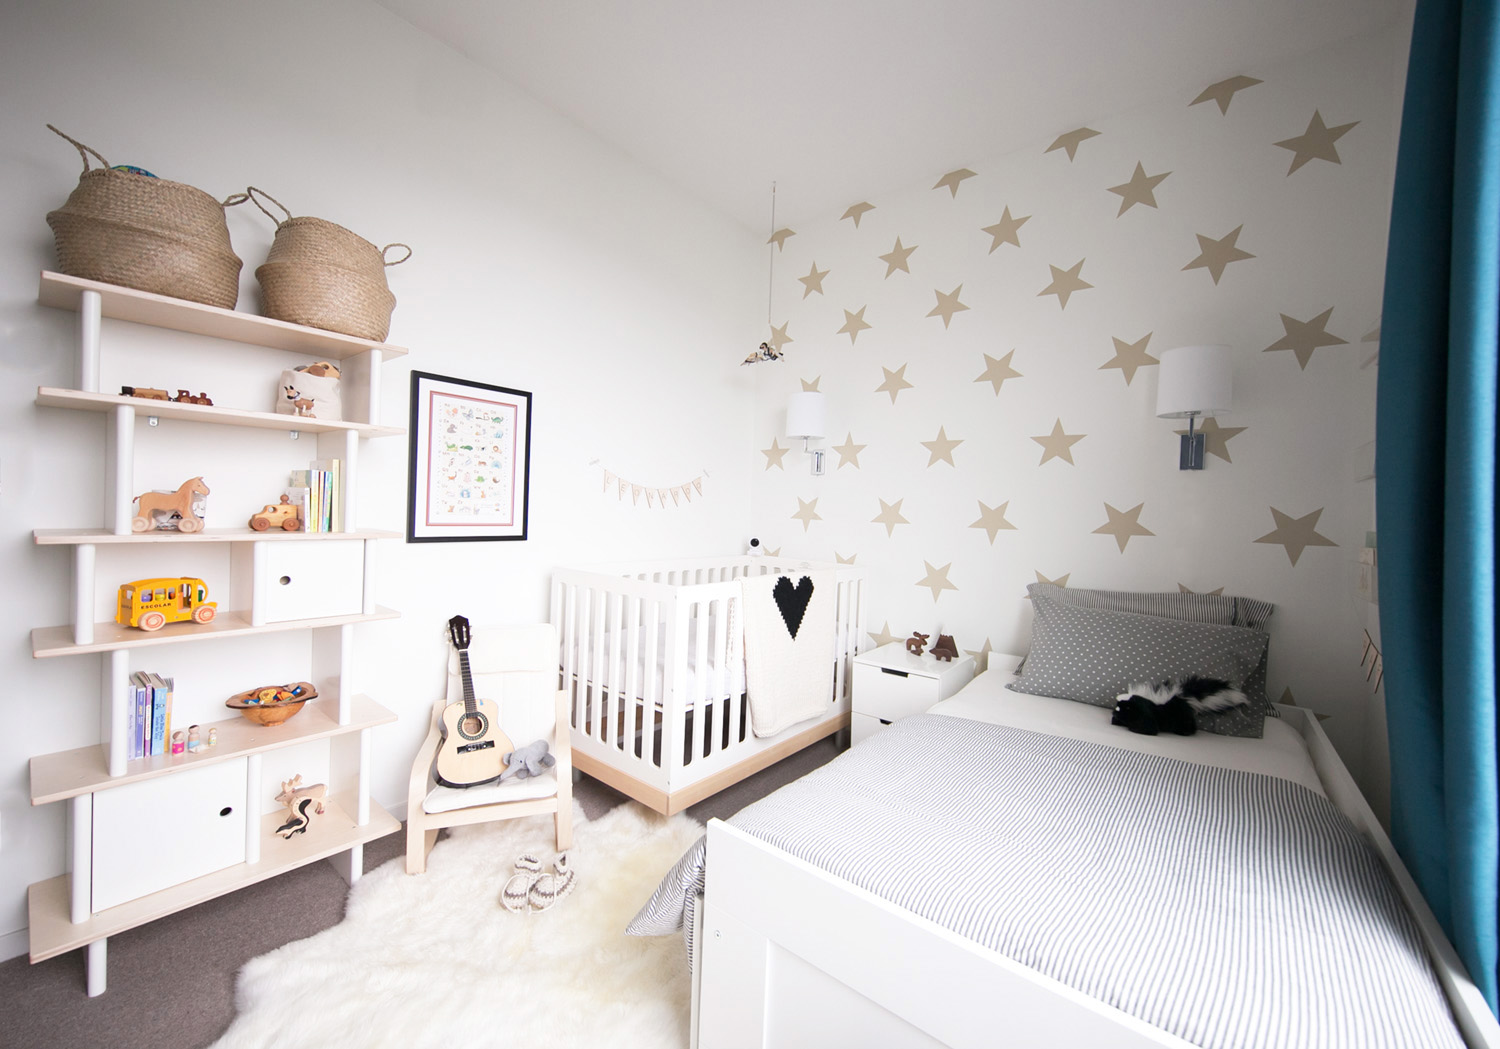 Baby and toddler shared room